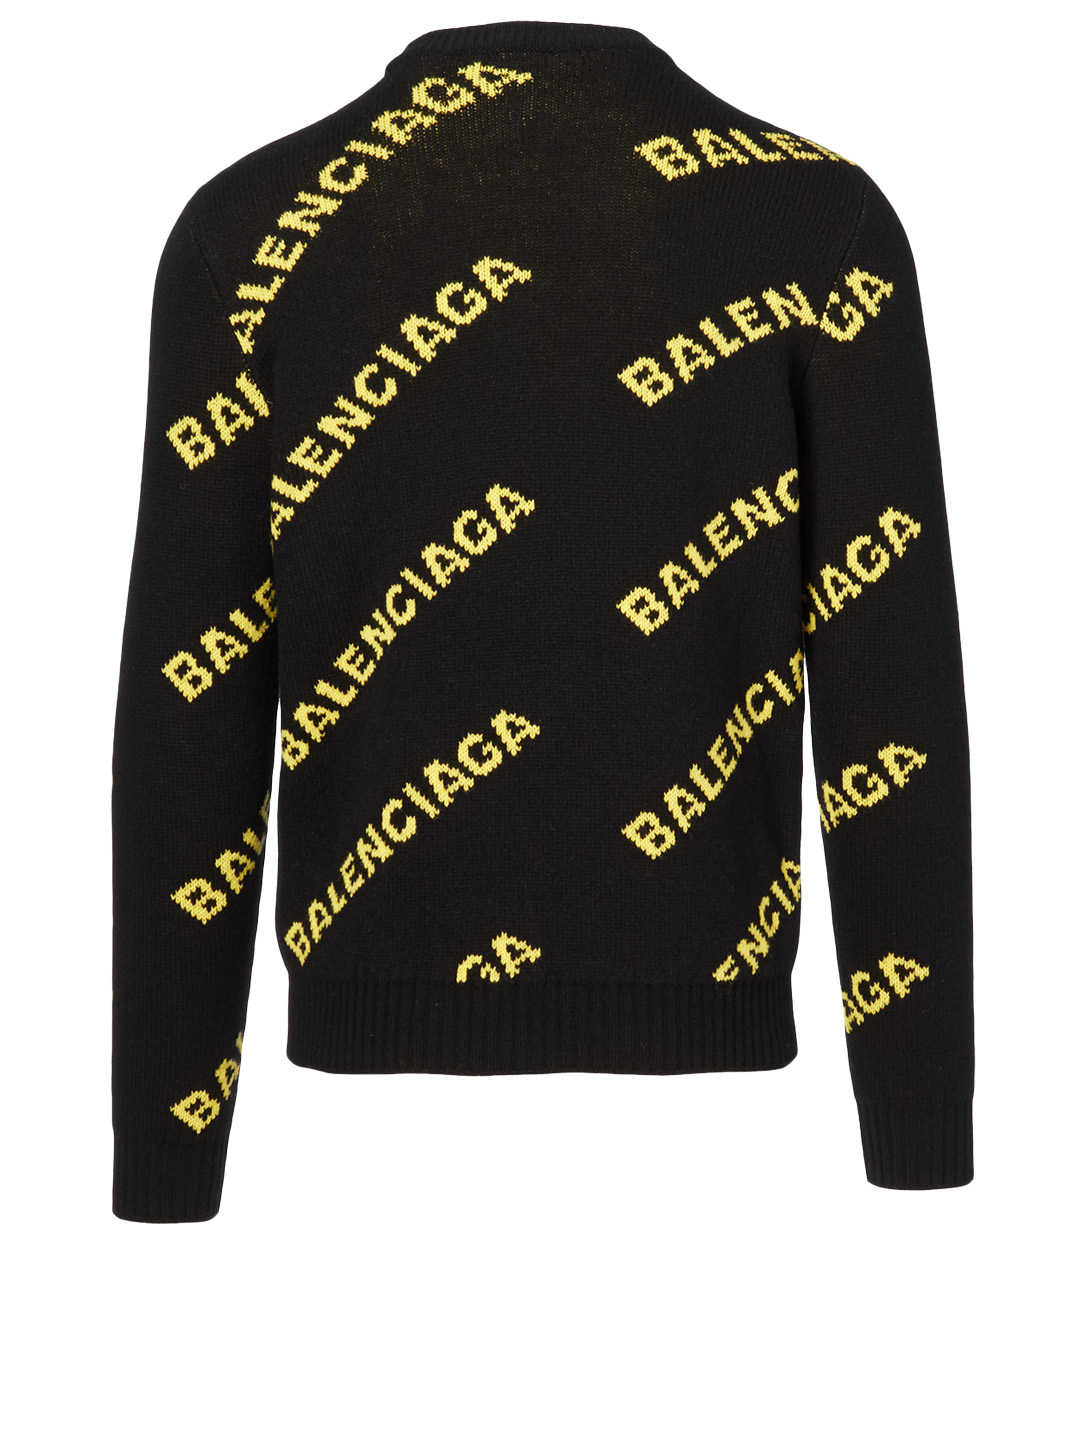 BALENCIAGA Wool Crewneck Sweater In Logo Print Men's Black